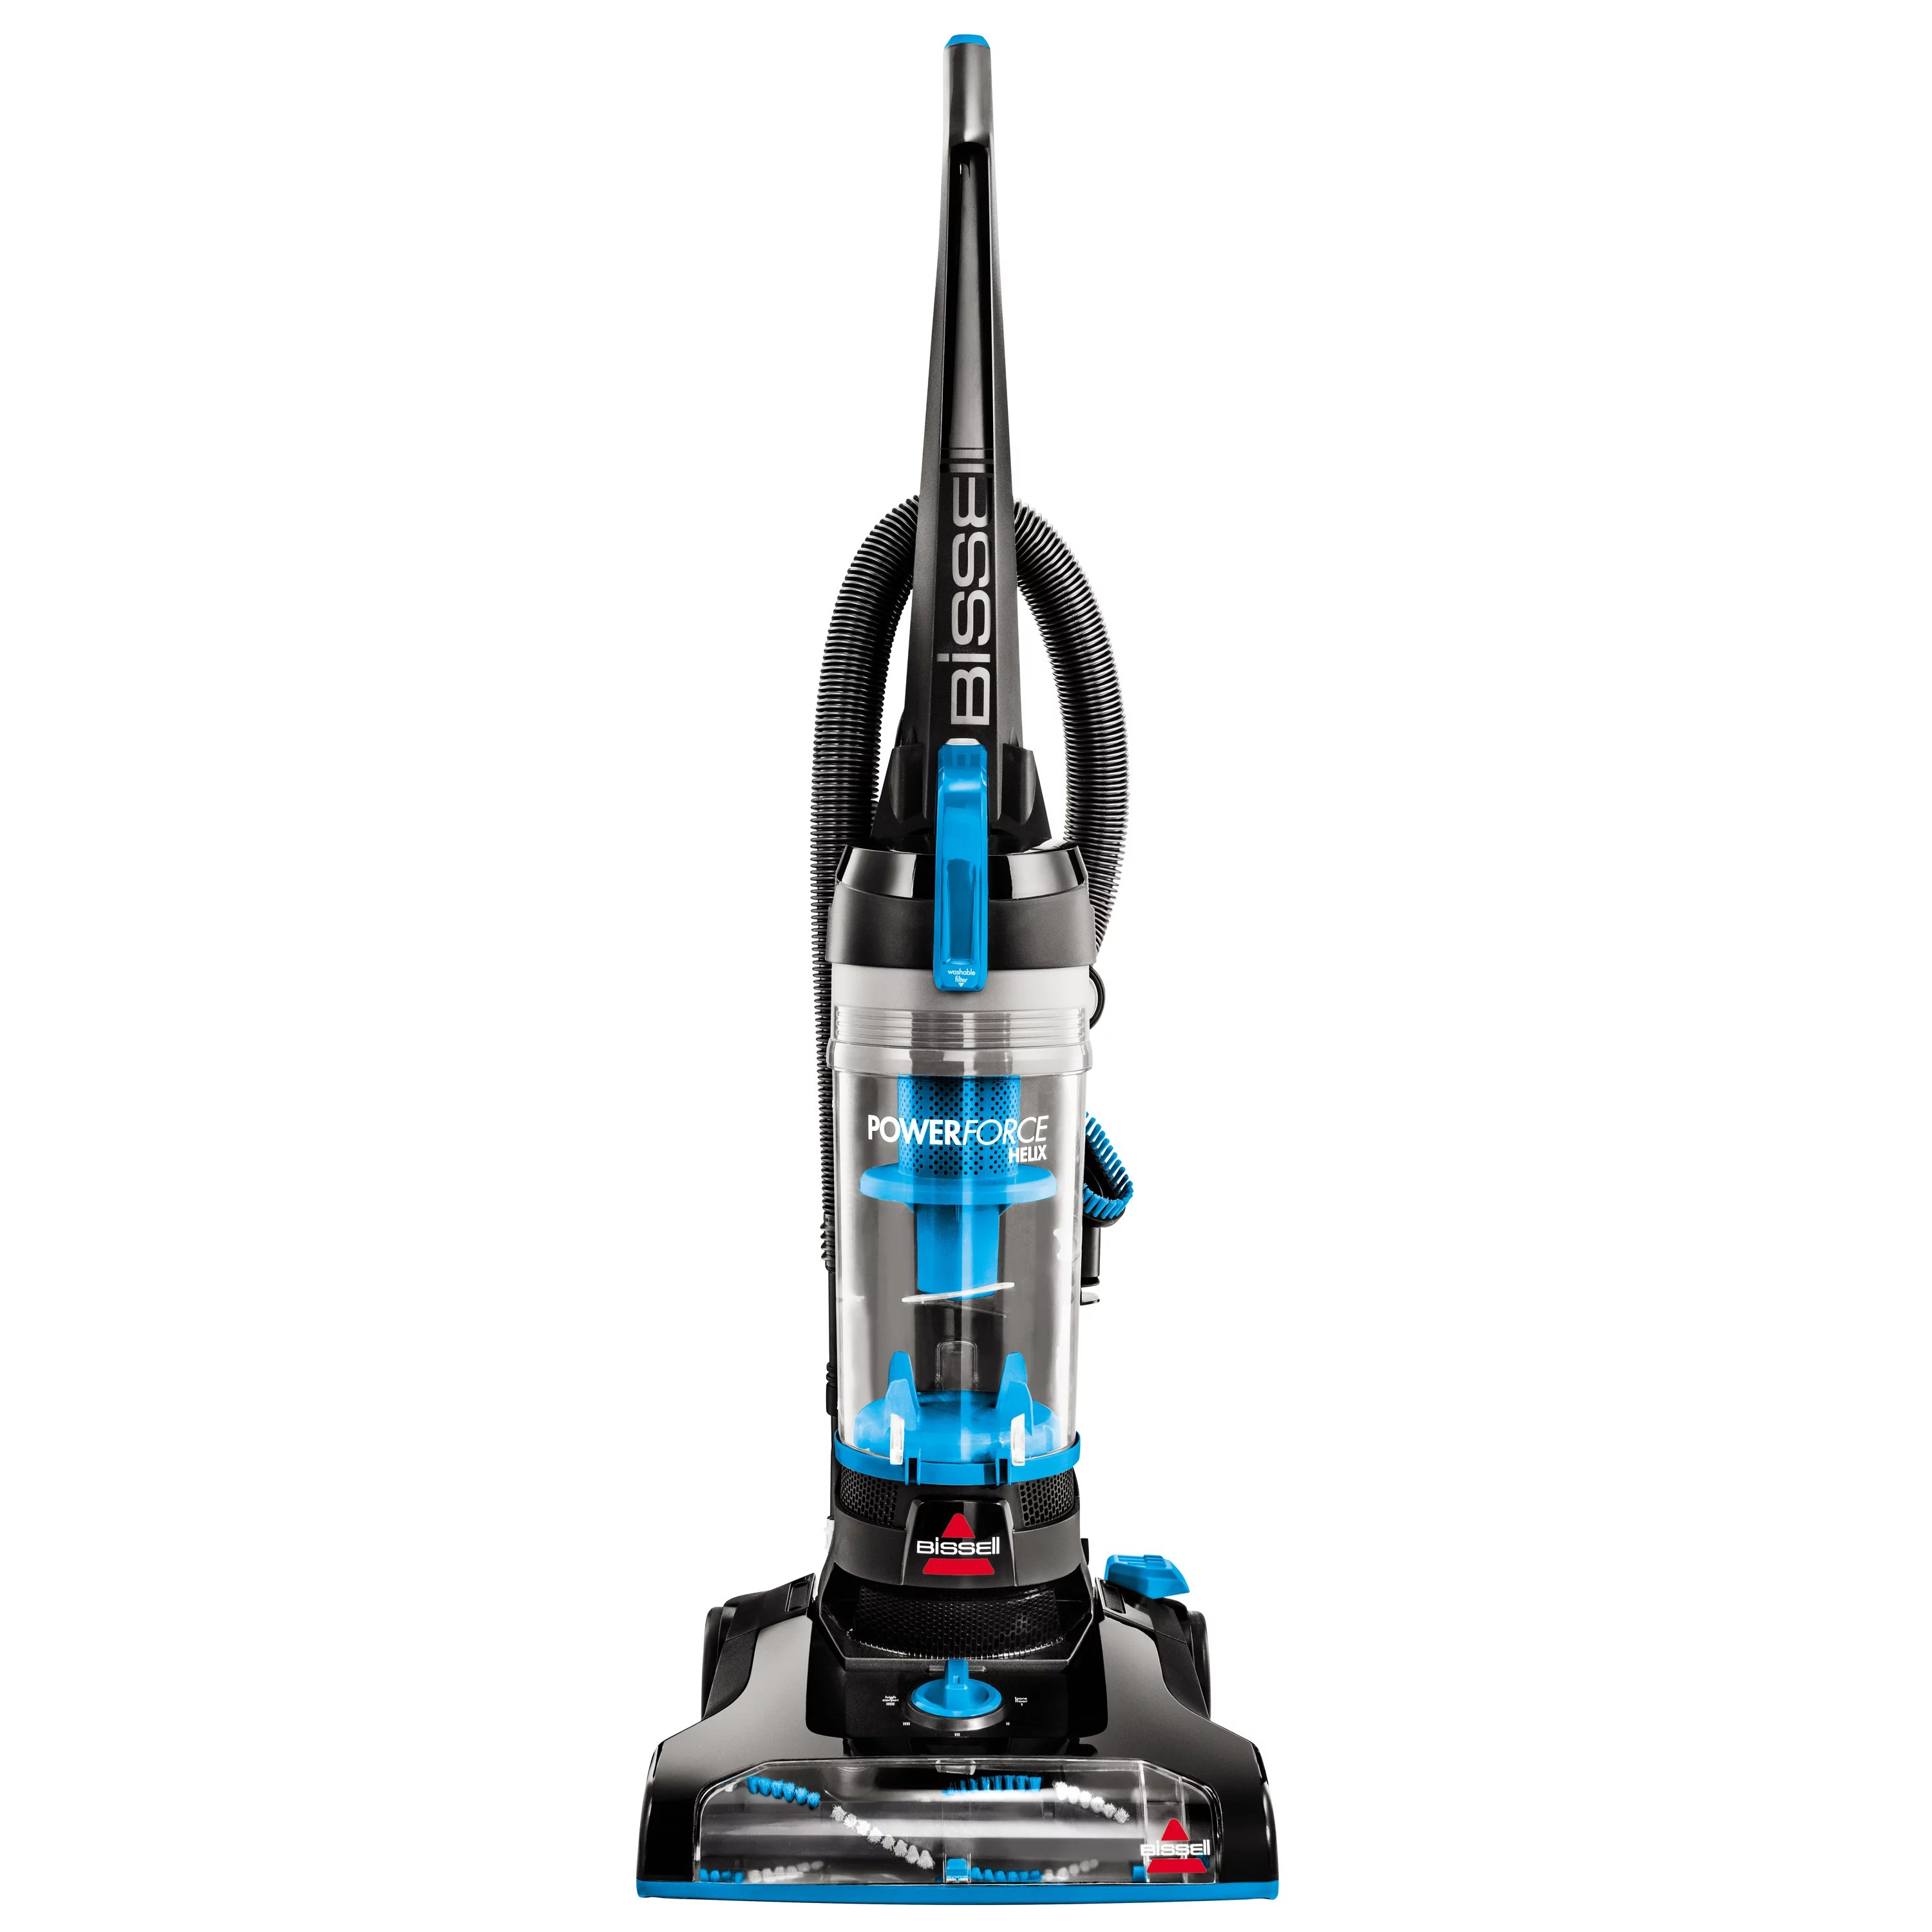 hight resolution of bissell powerforce helix bagless upright vacuum new and improved electrolux vacuum cleaner parts wiring diagram for bissell vacuum cleaner